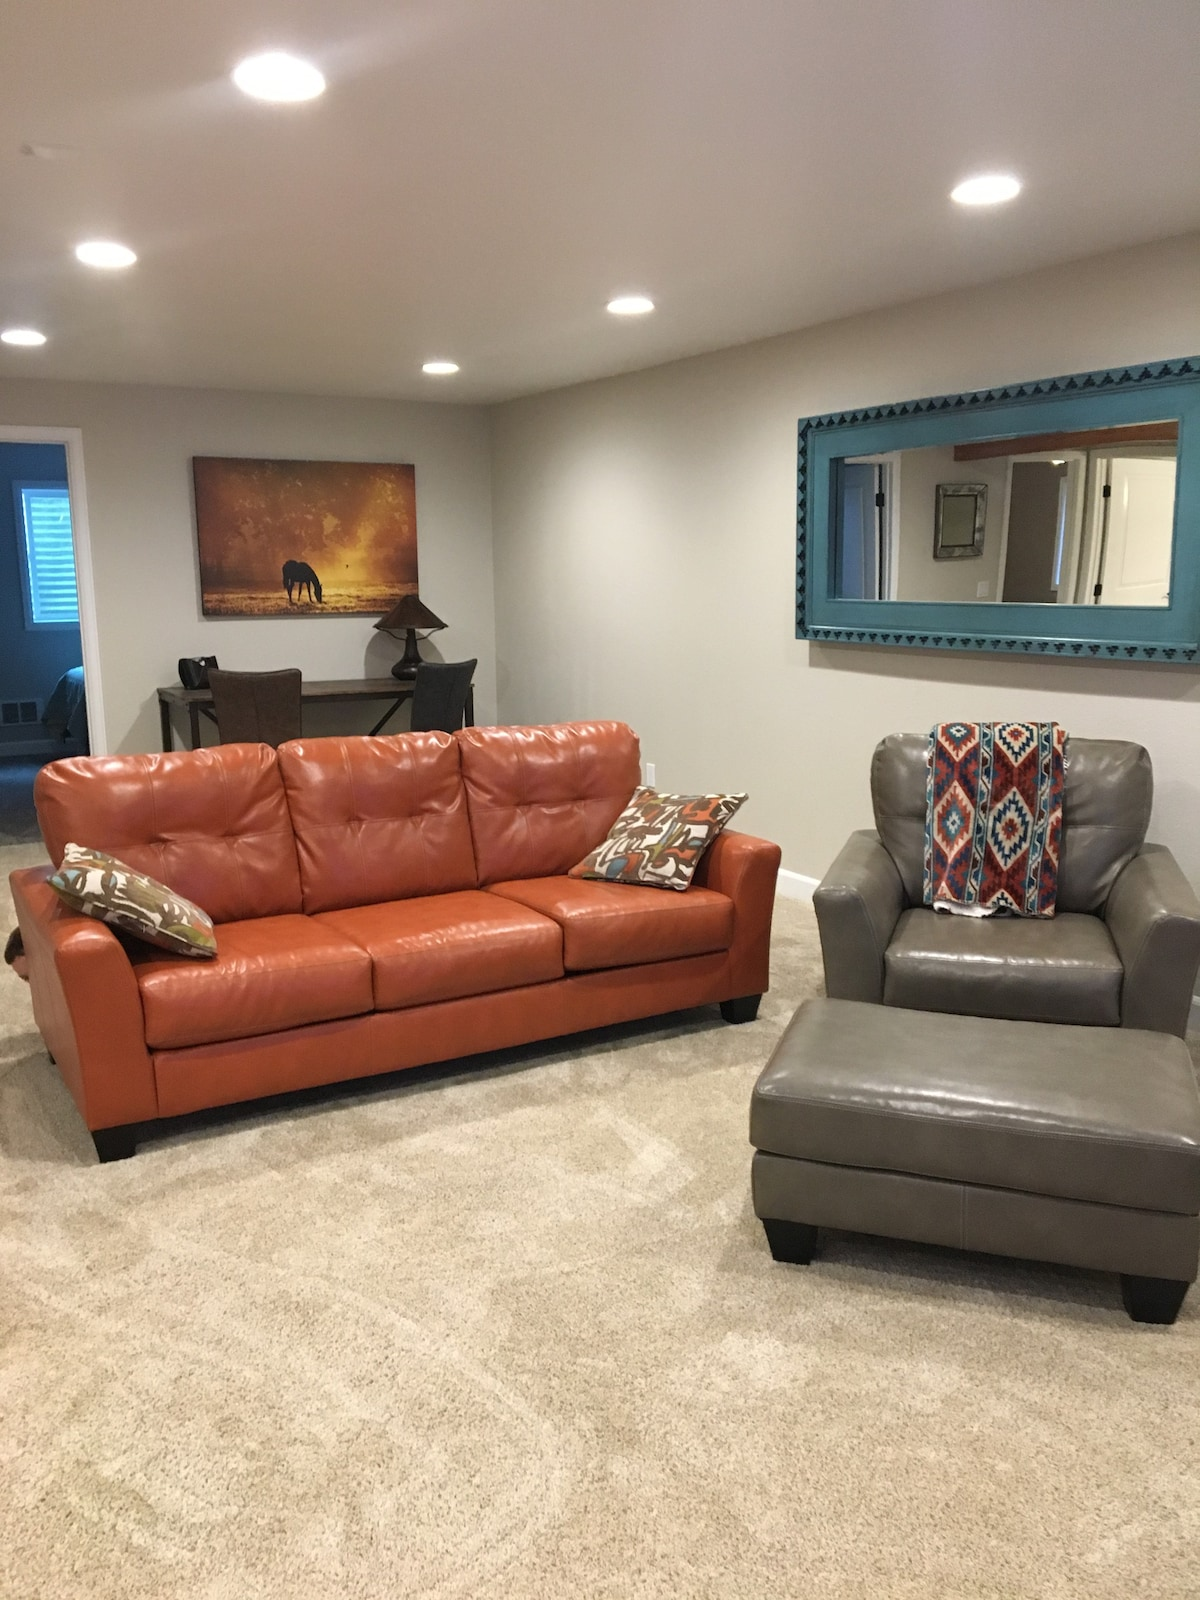 2 Bedroom Basement Apartment In Basalt   Apartments For Rent In Basalt,  Colorado, United States